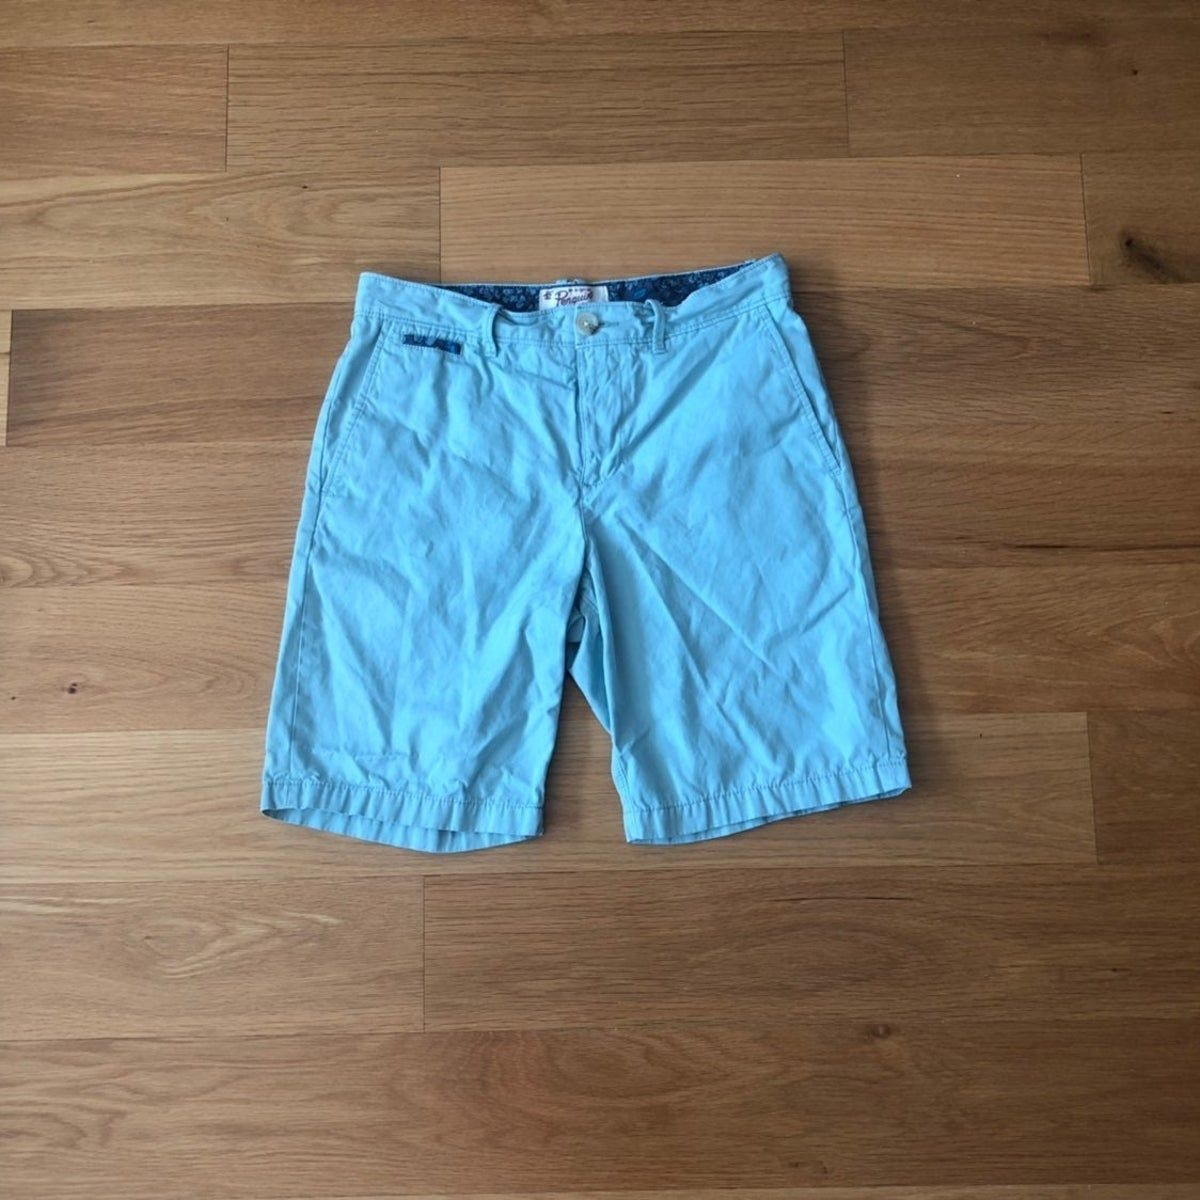 Men's Original Penguin Light Blue Shorts #lightblueshorts Men's Original Penguin Light Blue Shorts #lightblueshorts